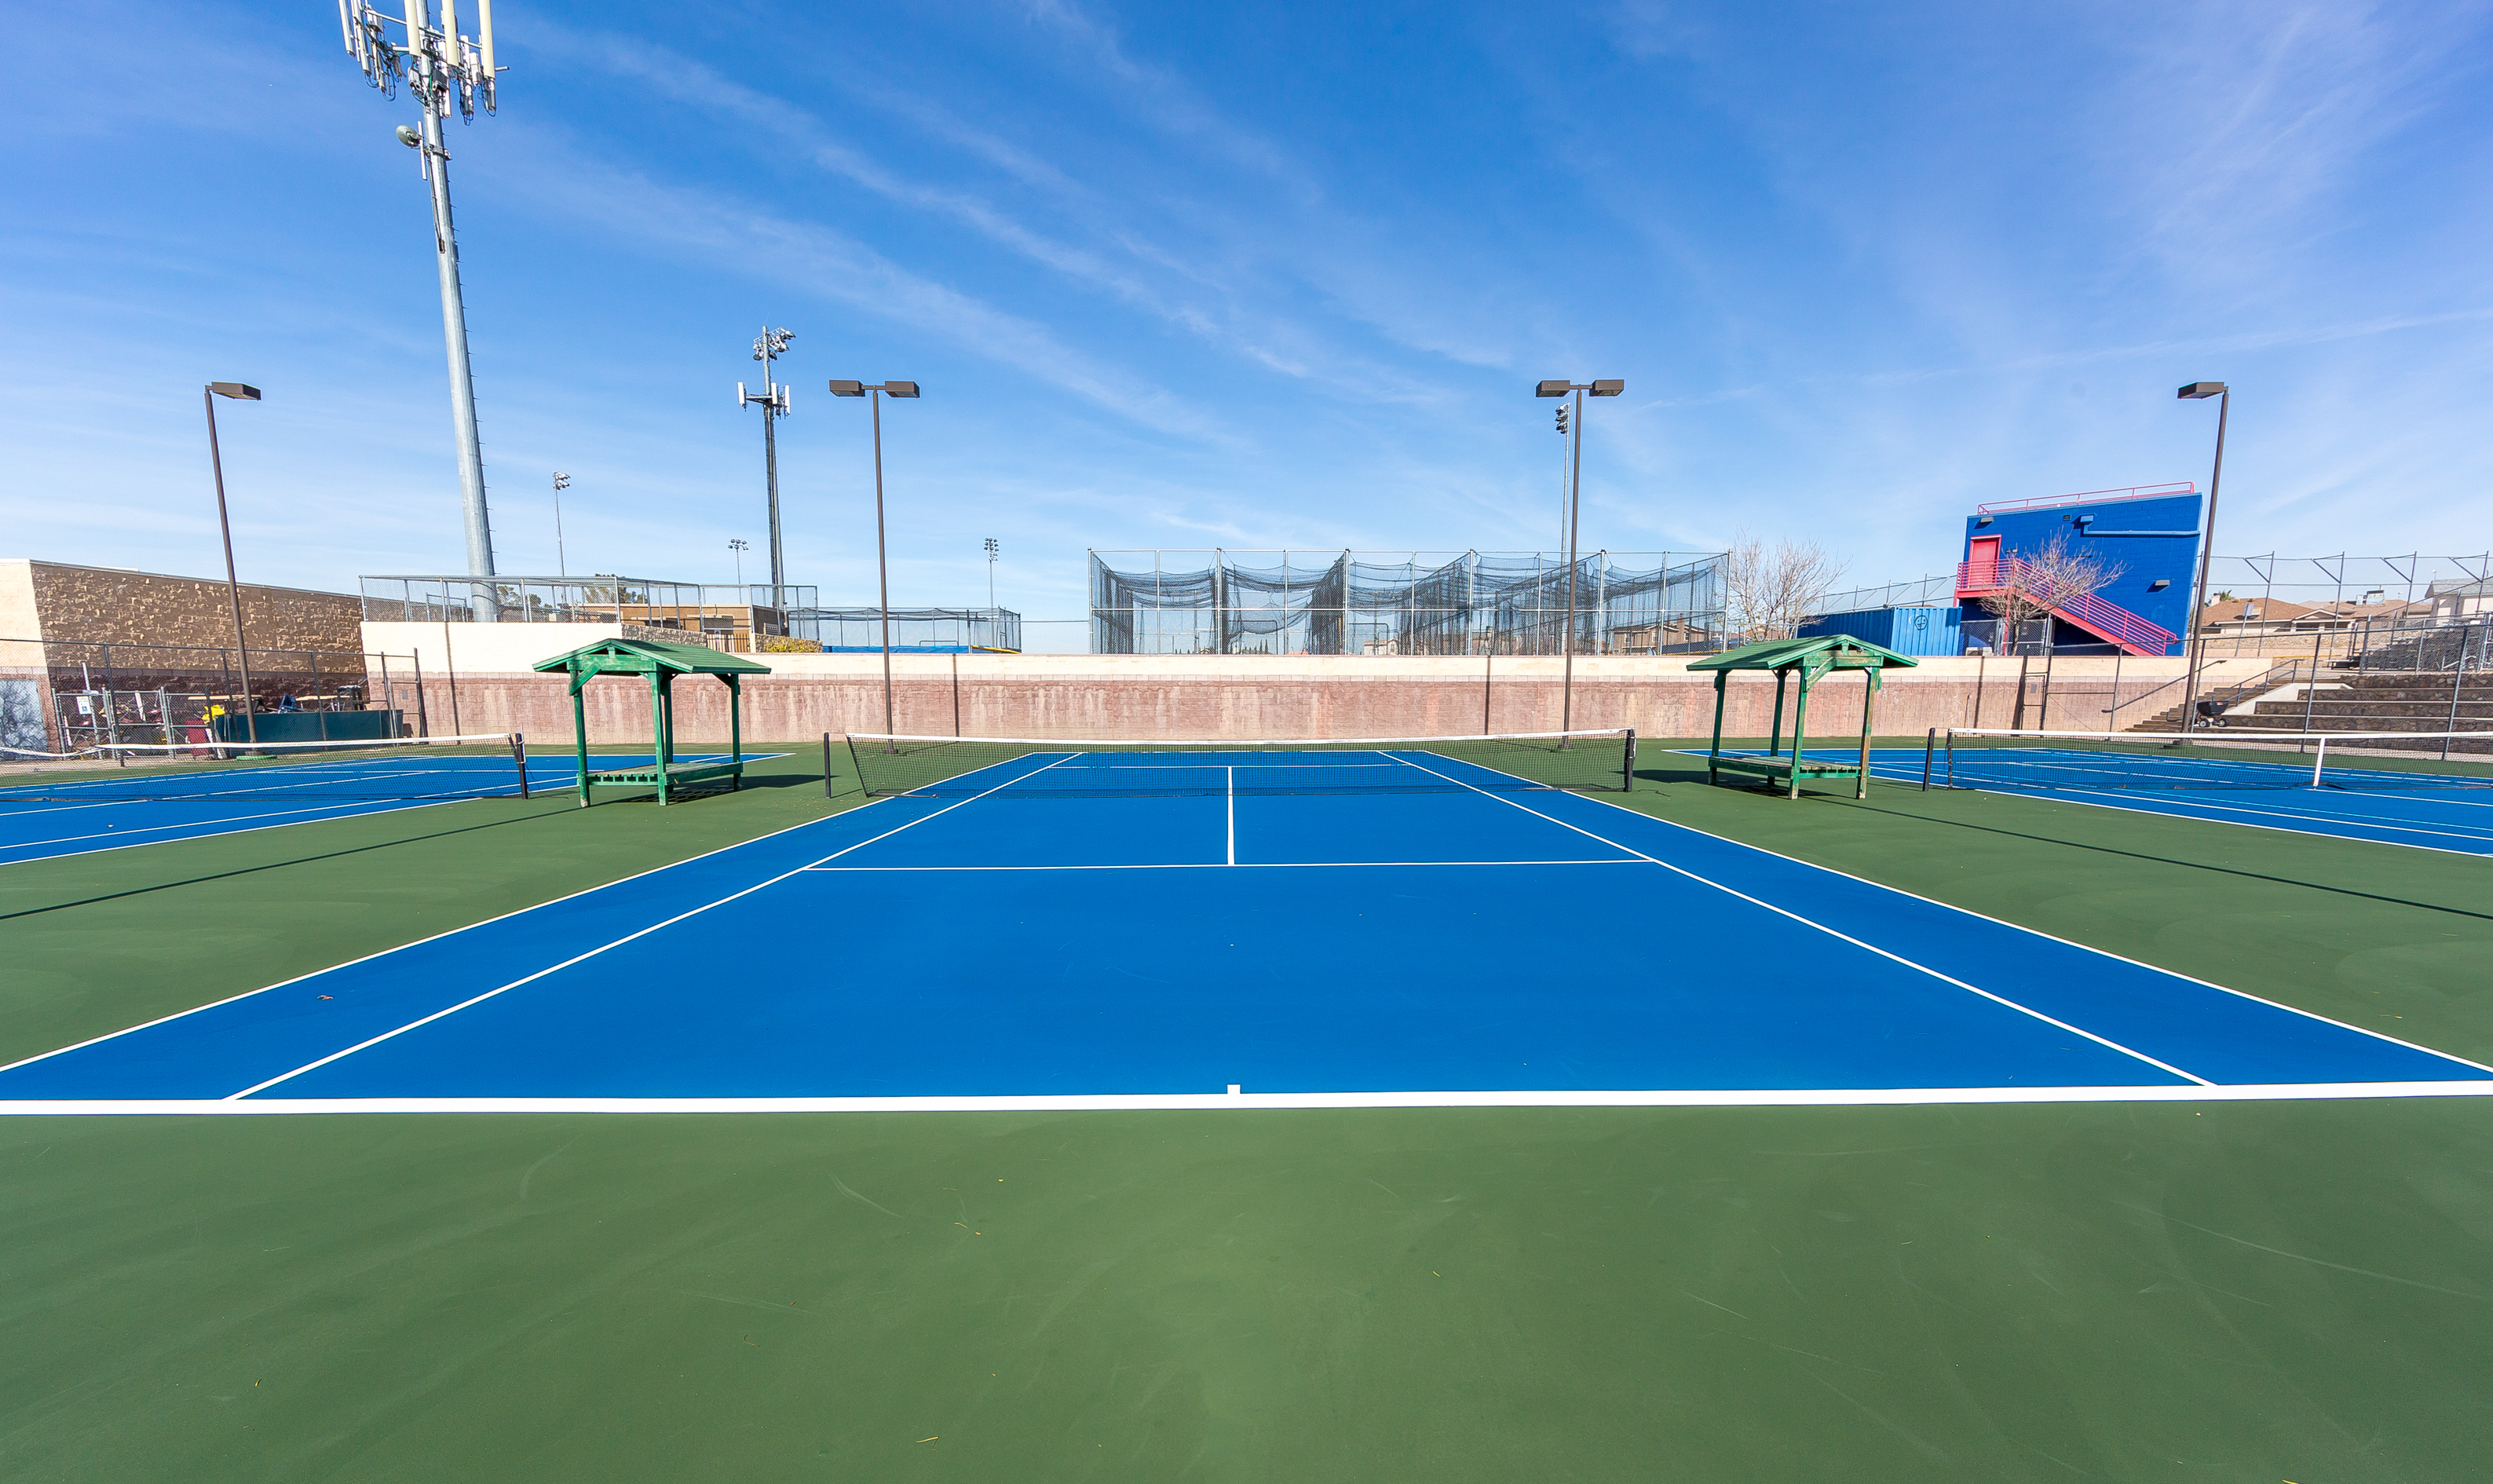 A resurfaced tennis court in blue in El Paso Texas